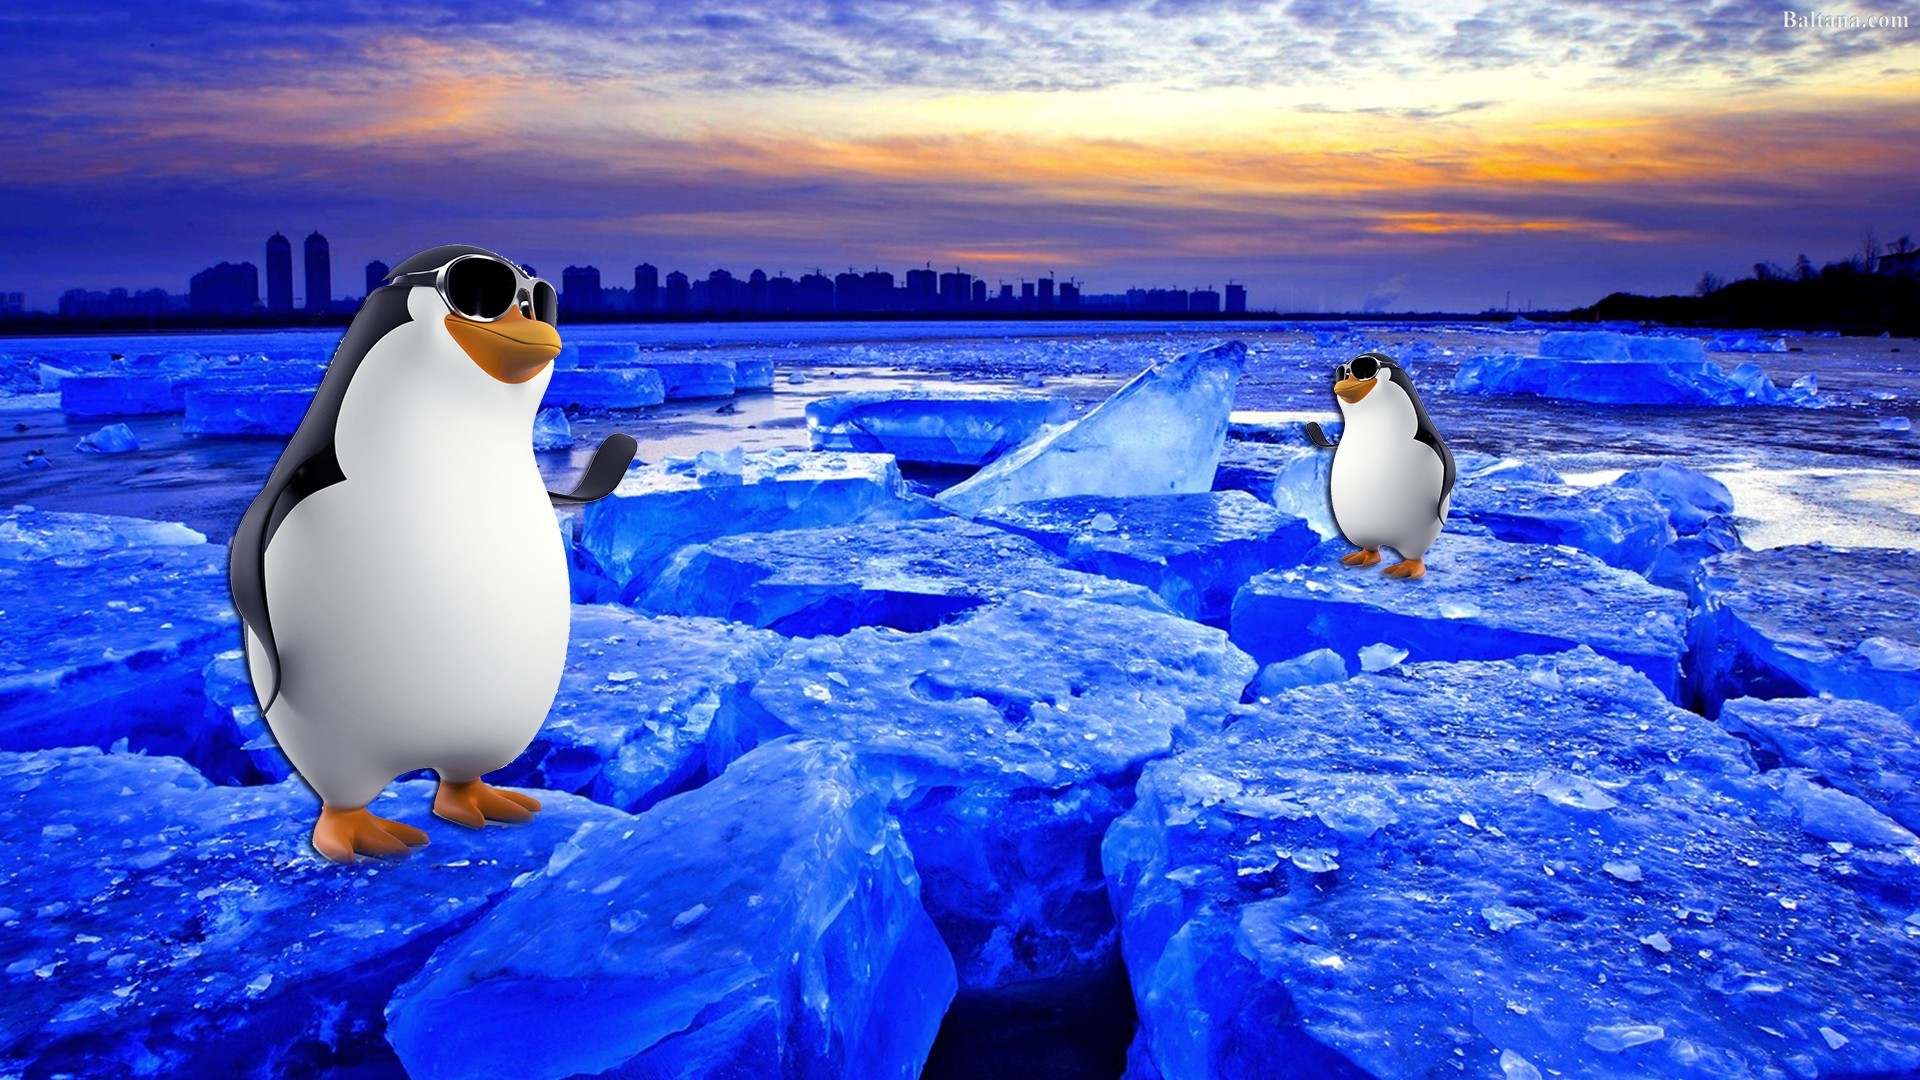 1920x1080 Penguin HD Desktop Wallpaper 31699